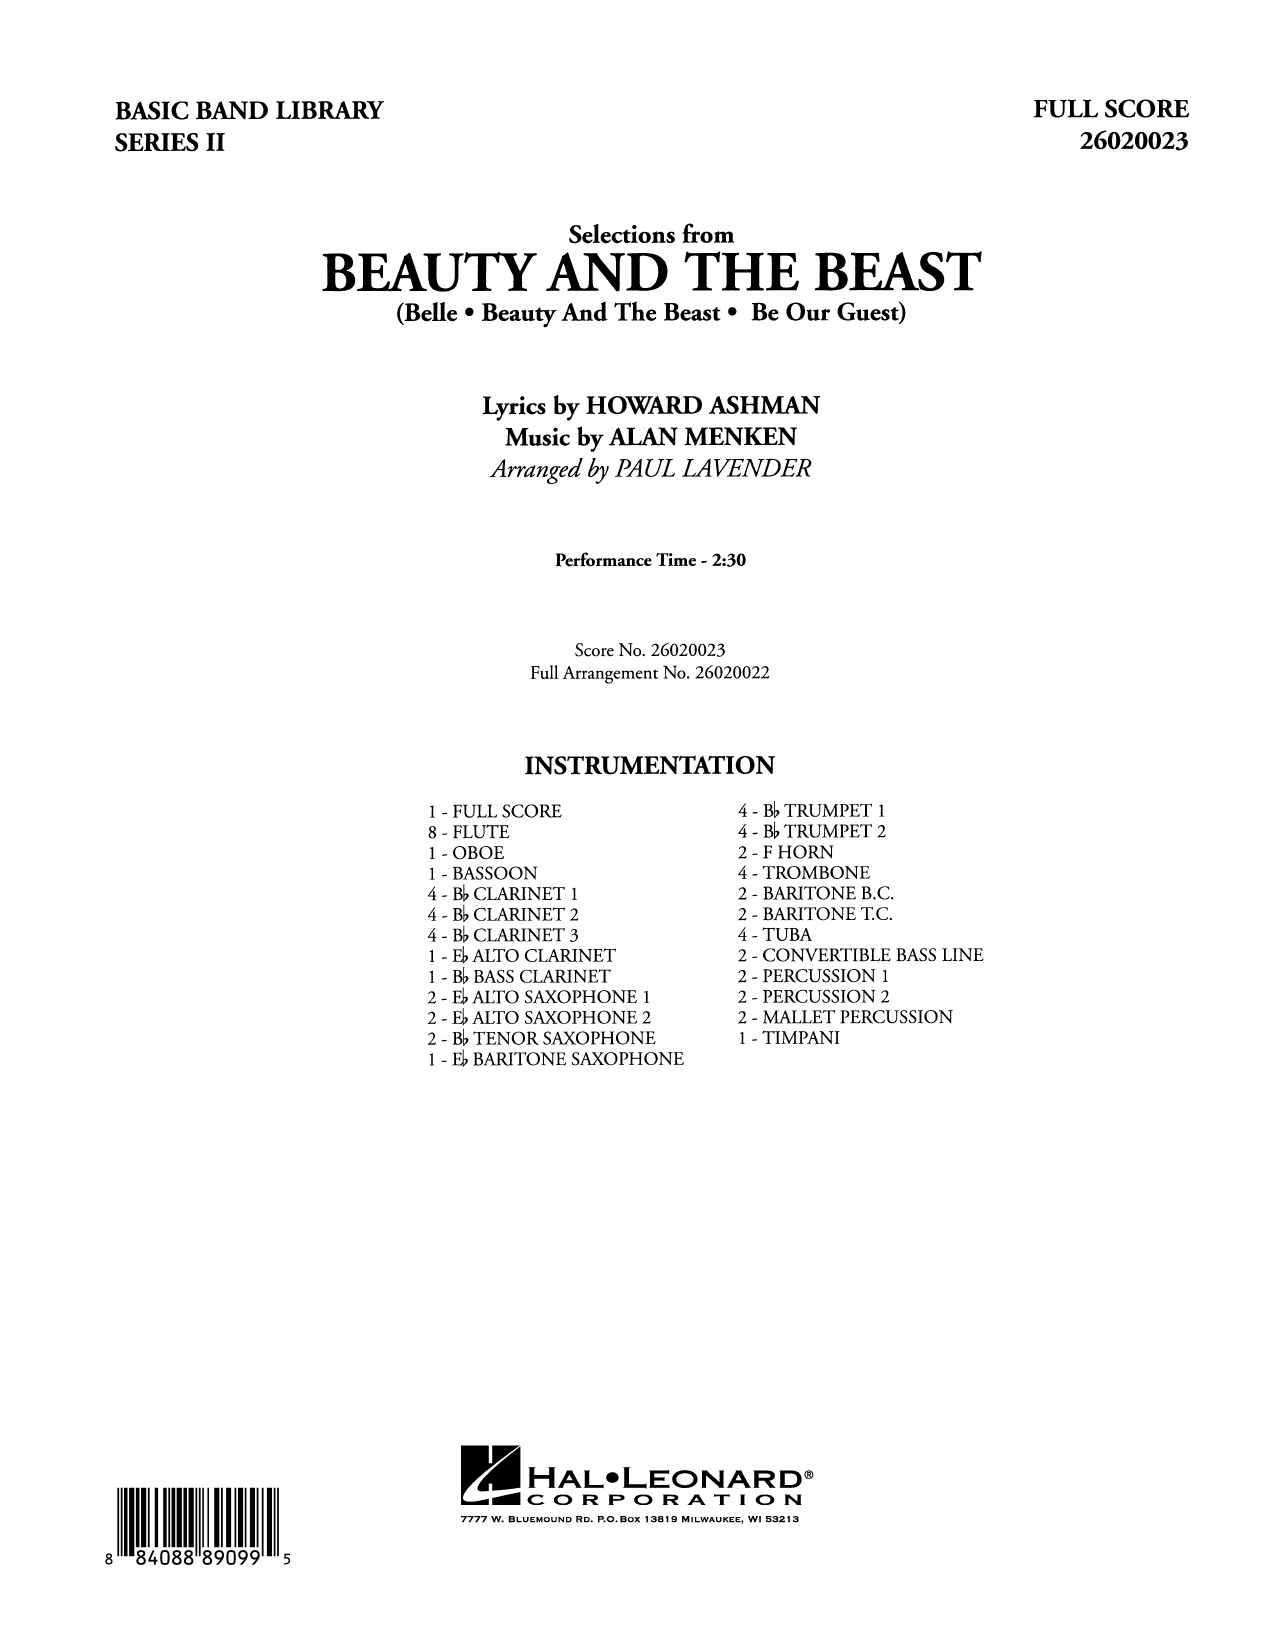 Paul Lavender Selections from Beauty and the Beast - Full Score sheet music notes and chords. Download Printable PDF.